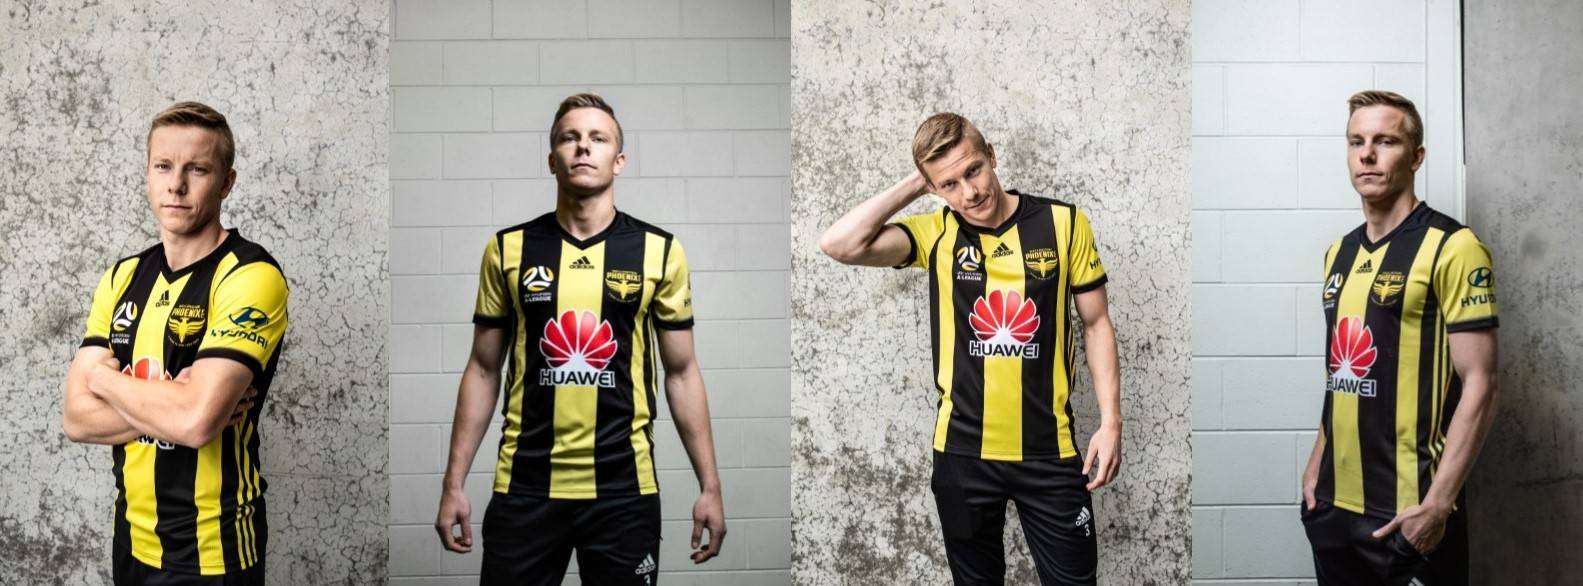 8a16f5f4e Supporters Wellington Phoenix – Football Central